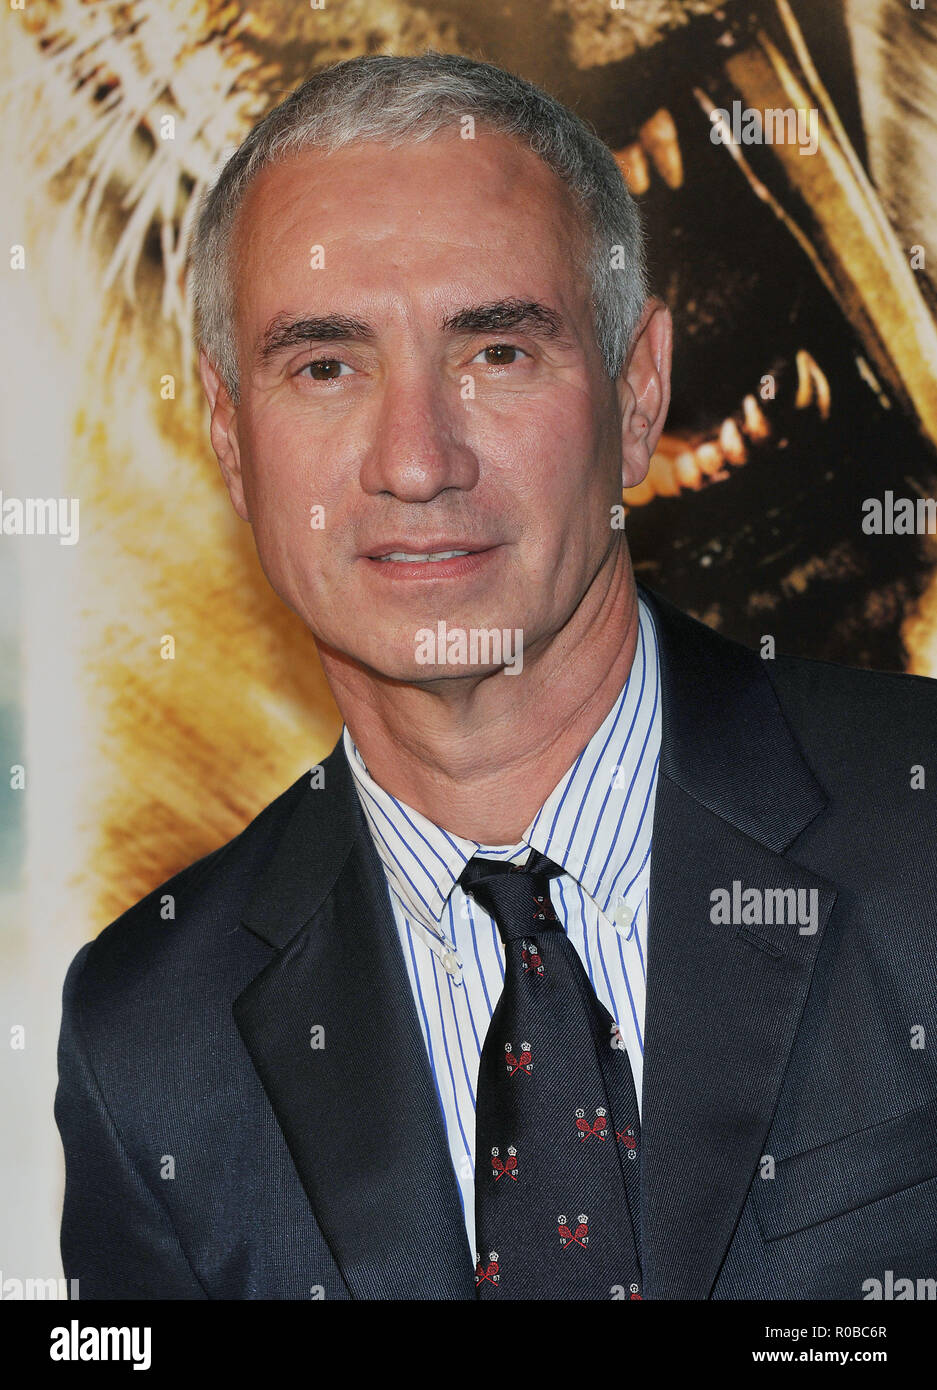 Roland Emmerich - director 10,000 BC Premiere at the Chinese Theatre In Los Angeles.  Headshot eye contact EmmerichRoland_20 Red Carpet Event, Vertical, USA, Film Industry, Celebrities,  Photography, Bestof, Arts Culture and Entertainment, Topix Celebrities fashion /  Vertical, Best of, Event in Hollywood Life - California,  Red Carpet and backstage, USA, Film Industry, Celebrities,  movie celebrities, TV celebrities, Music celebrities, Photography, Bestof, Arts Culture and Entertainment,  Topix, headshot, vertical, one person,, from the year , 2008, inquiry tsuni@Gamma-USA.com - Stock Image